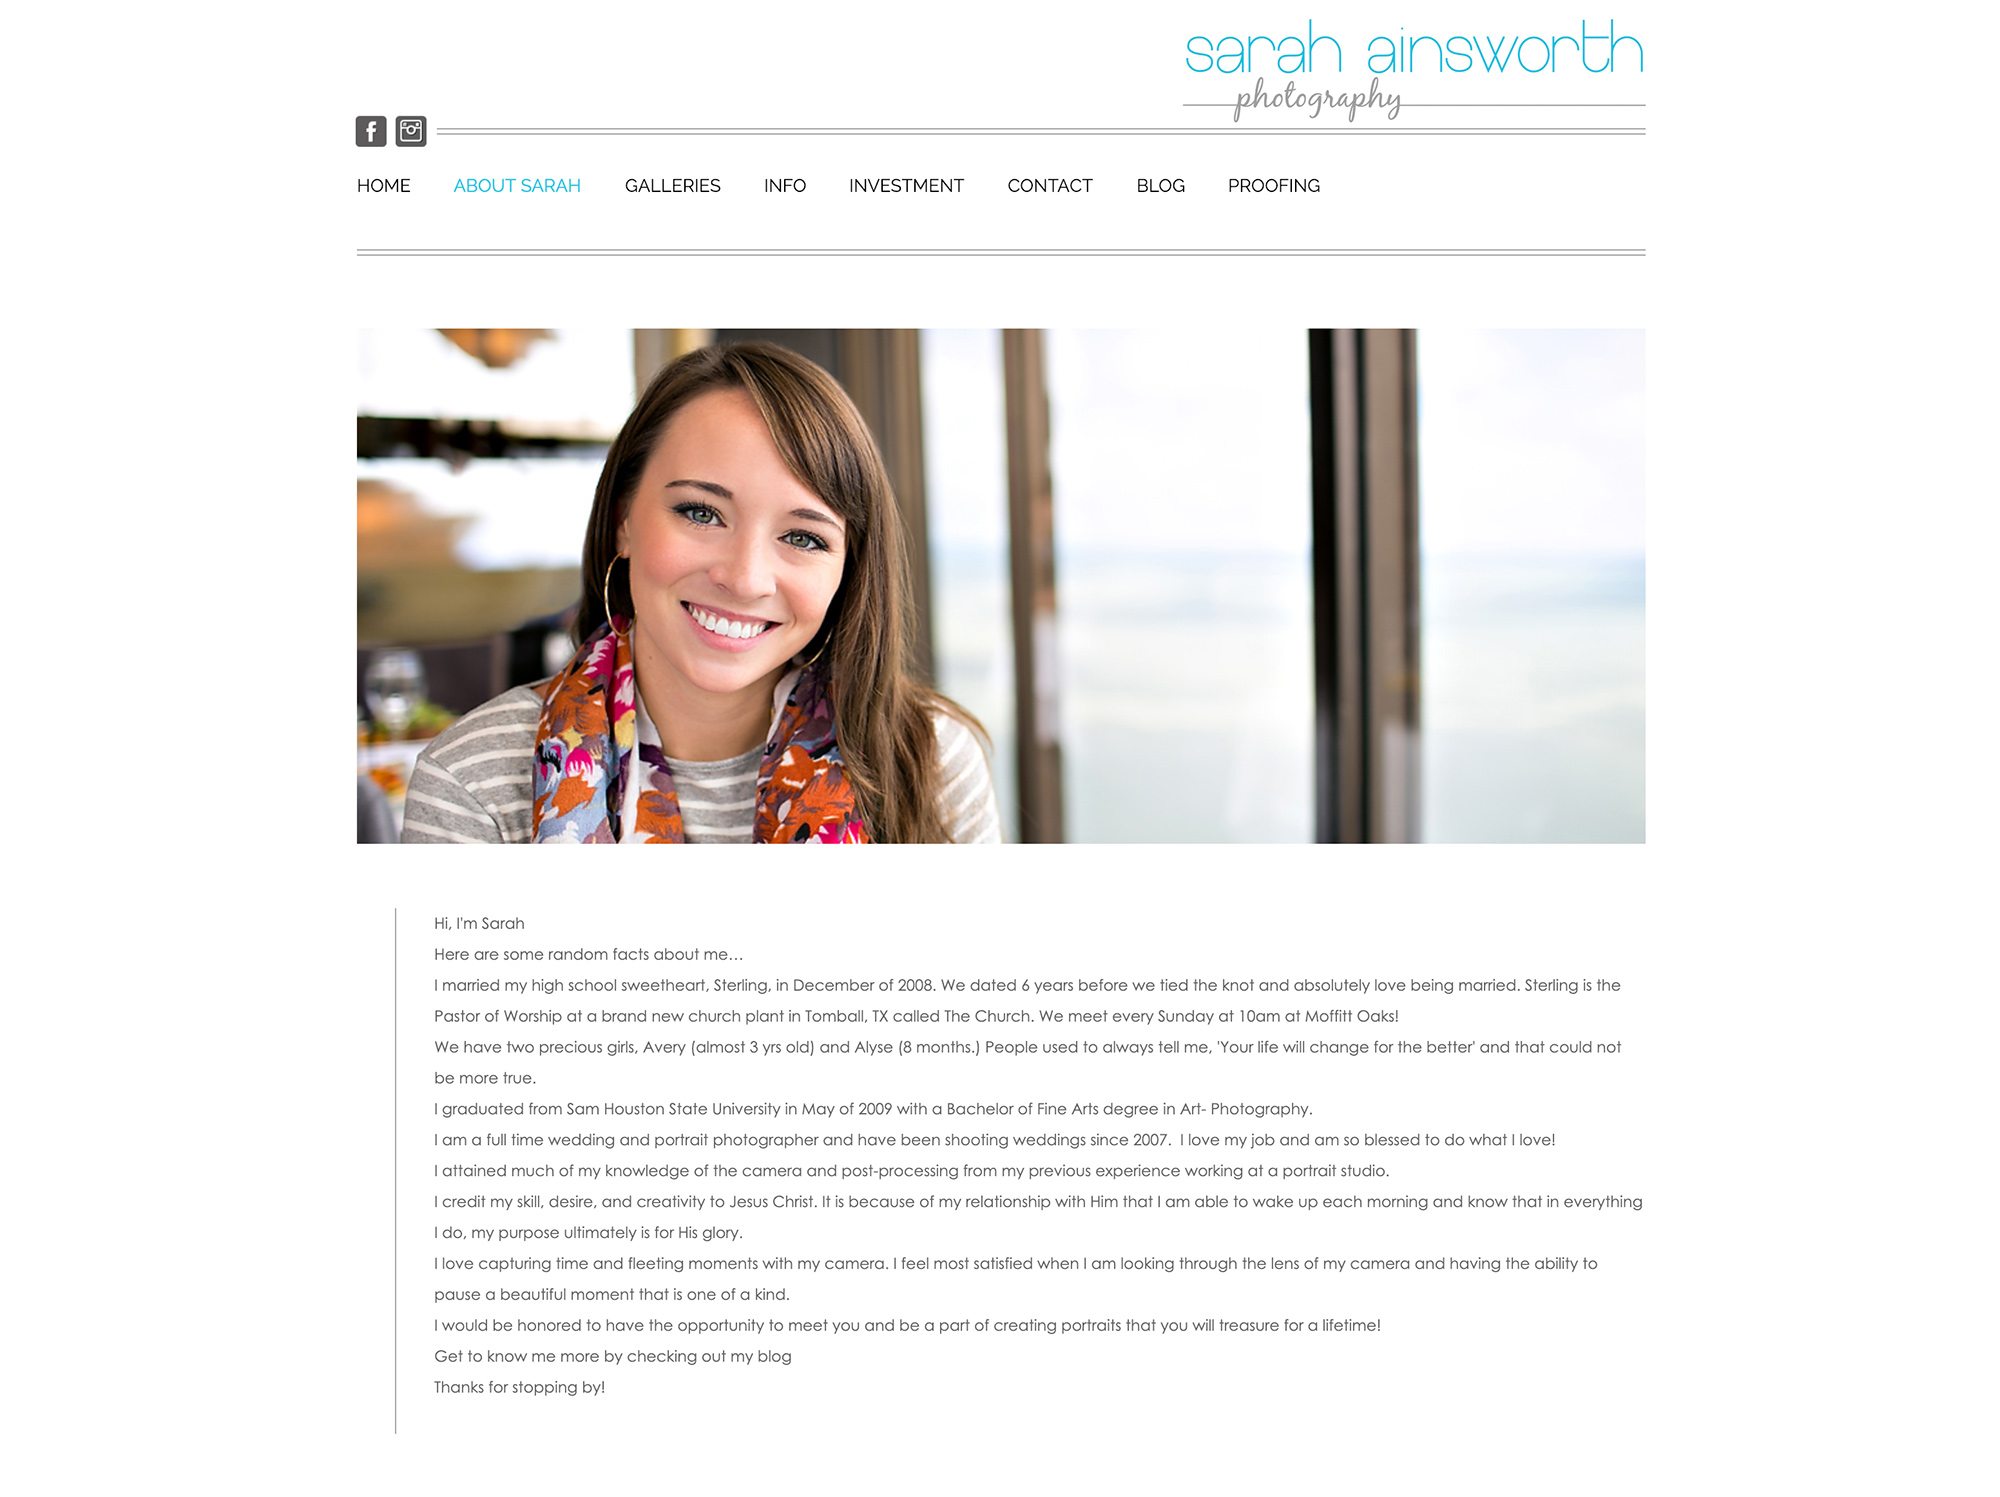 SarahAinsworthPhotography-About-Page-Before.jpg